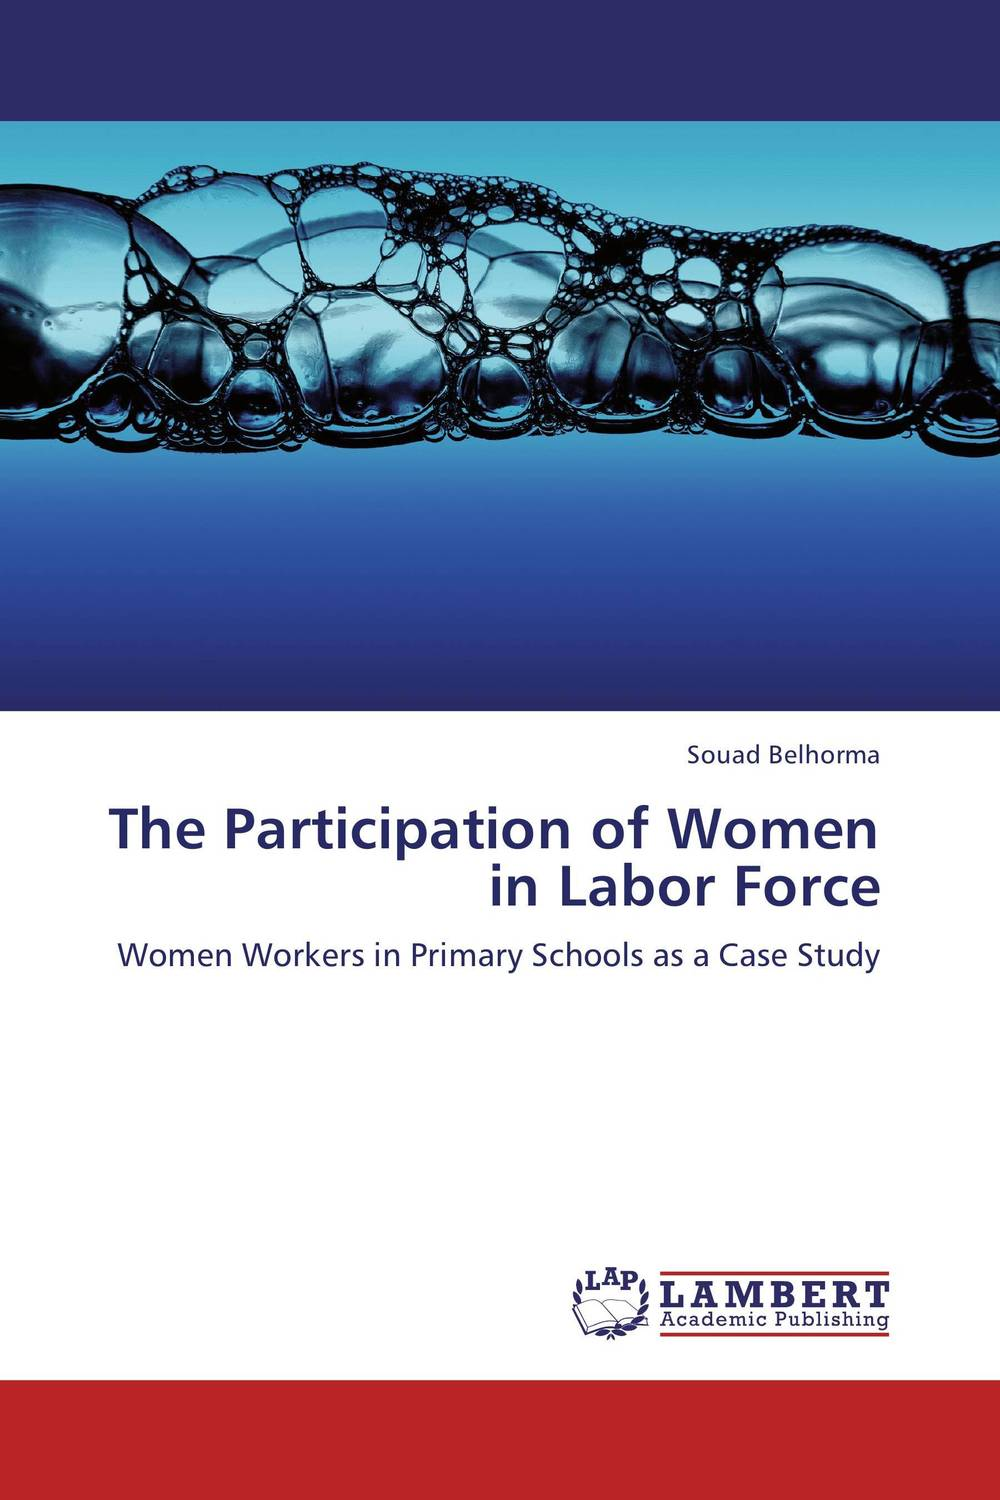 The Participation of Women in Labor Force